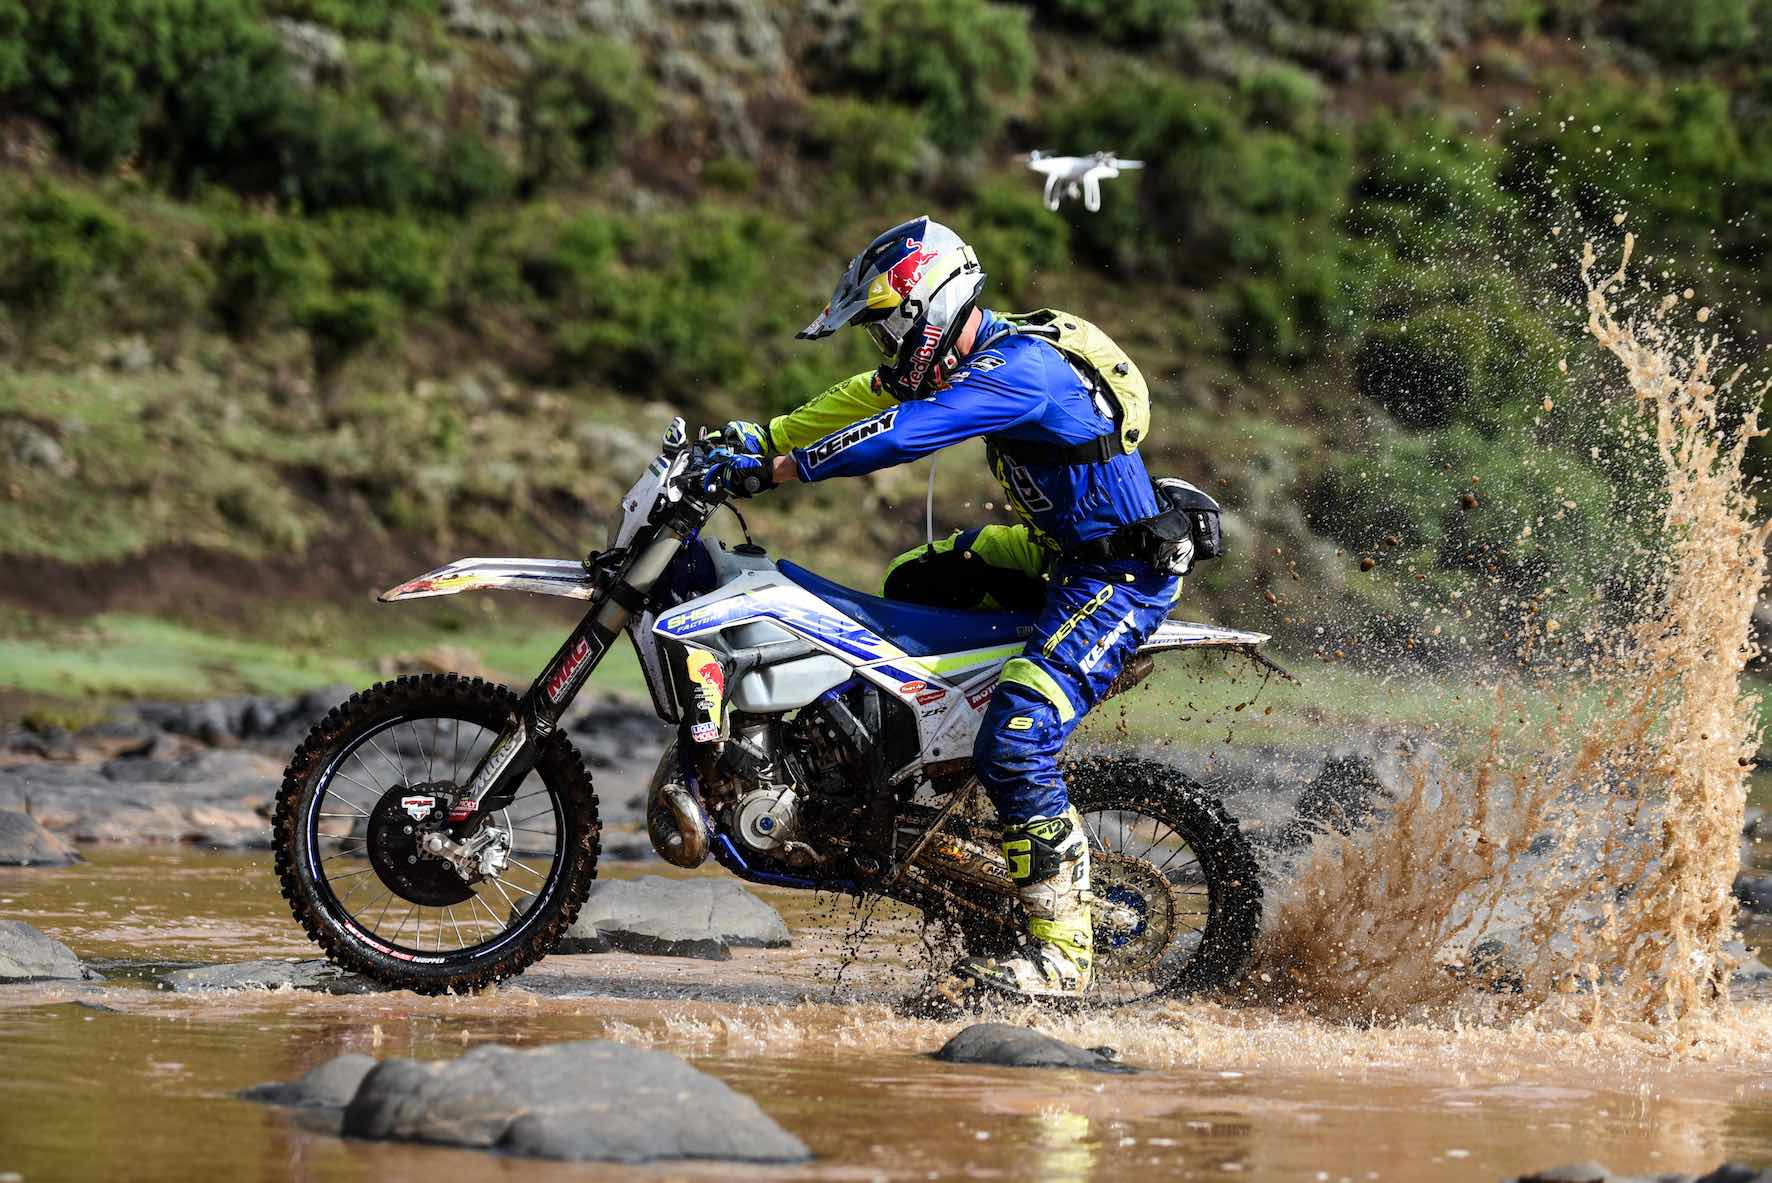 Wade Young victorious again at the 2018 Roof of Africa extreme enduro